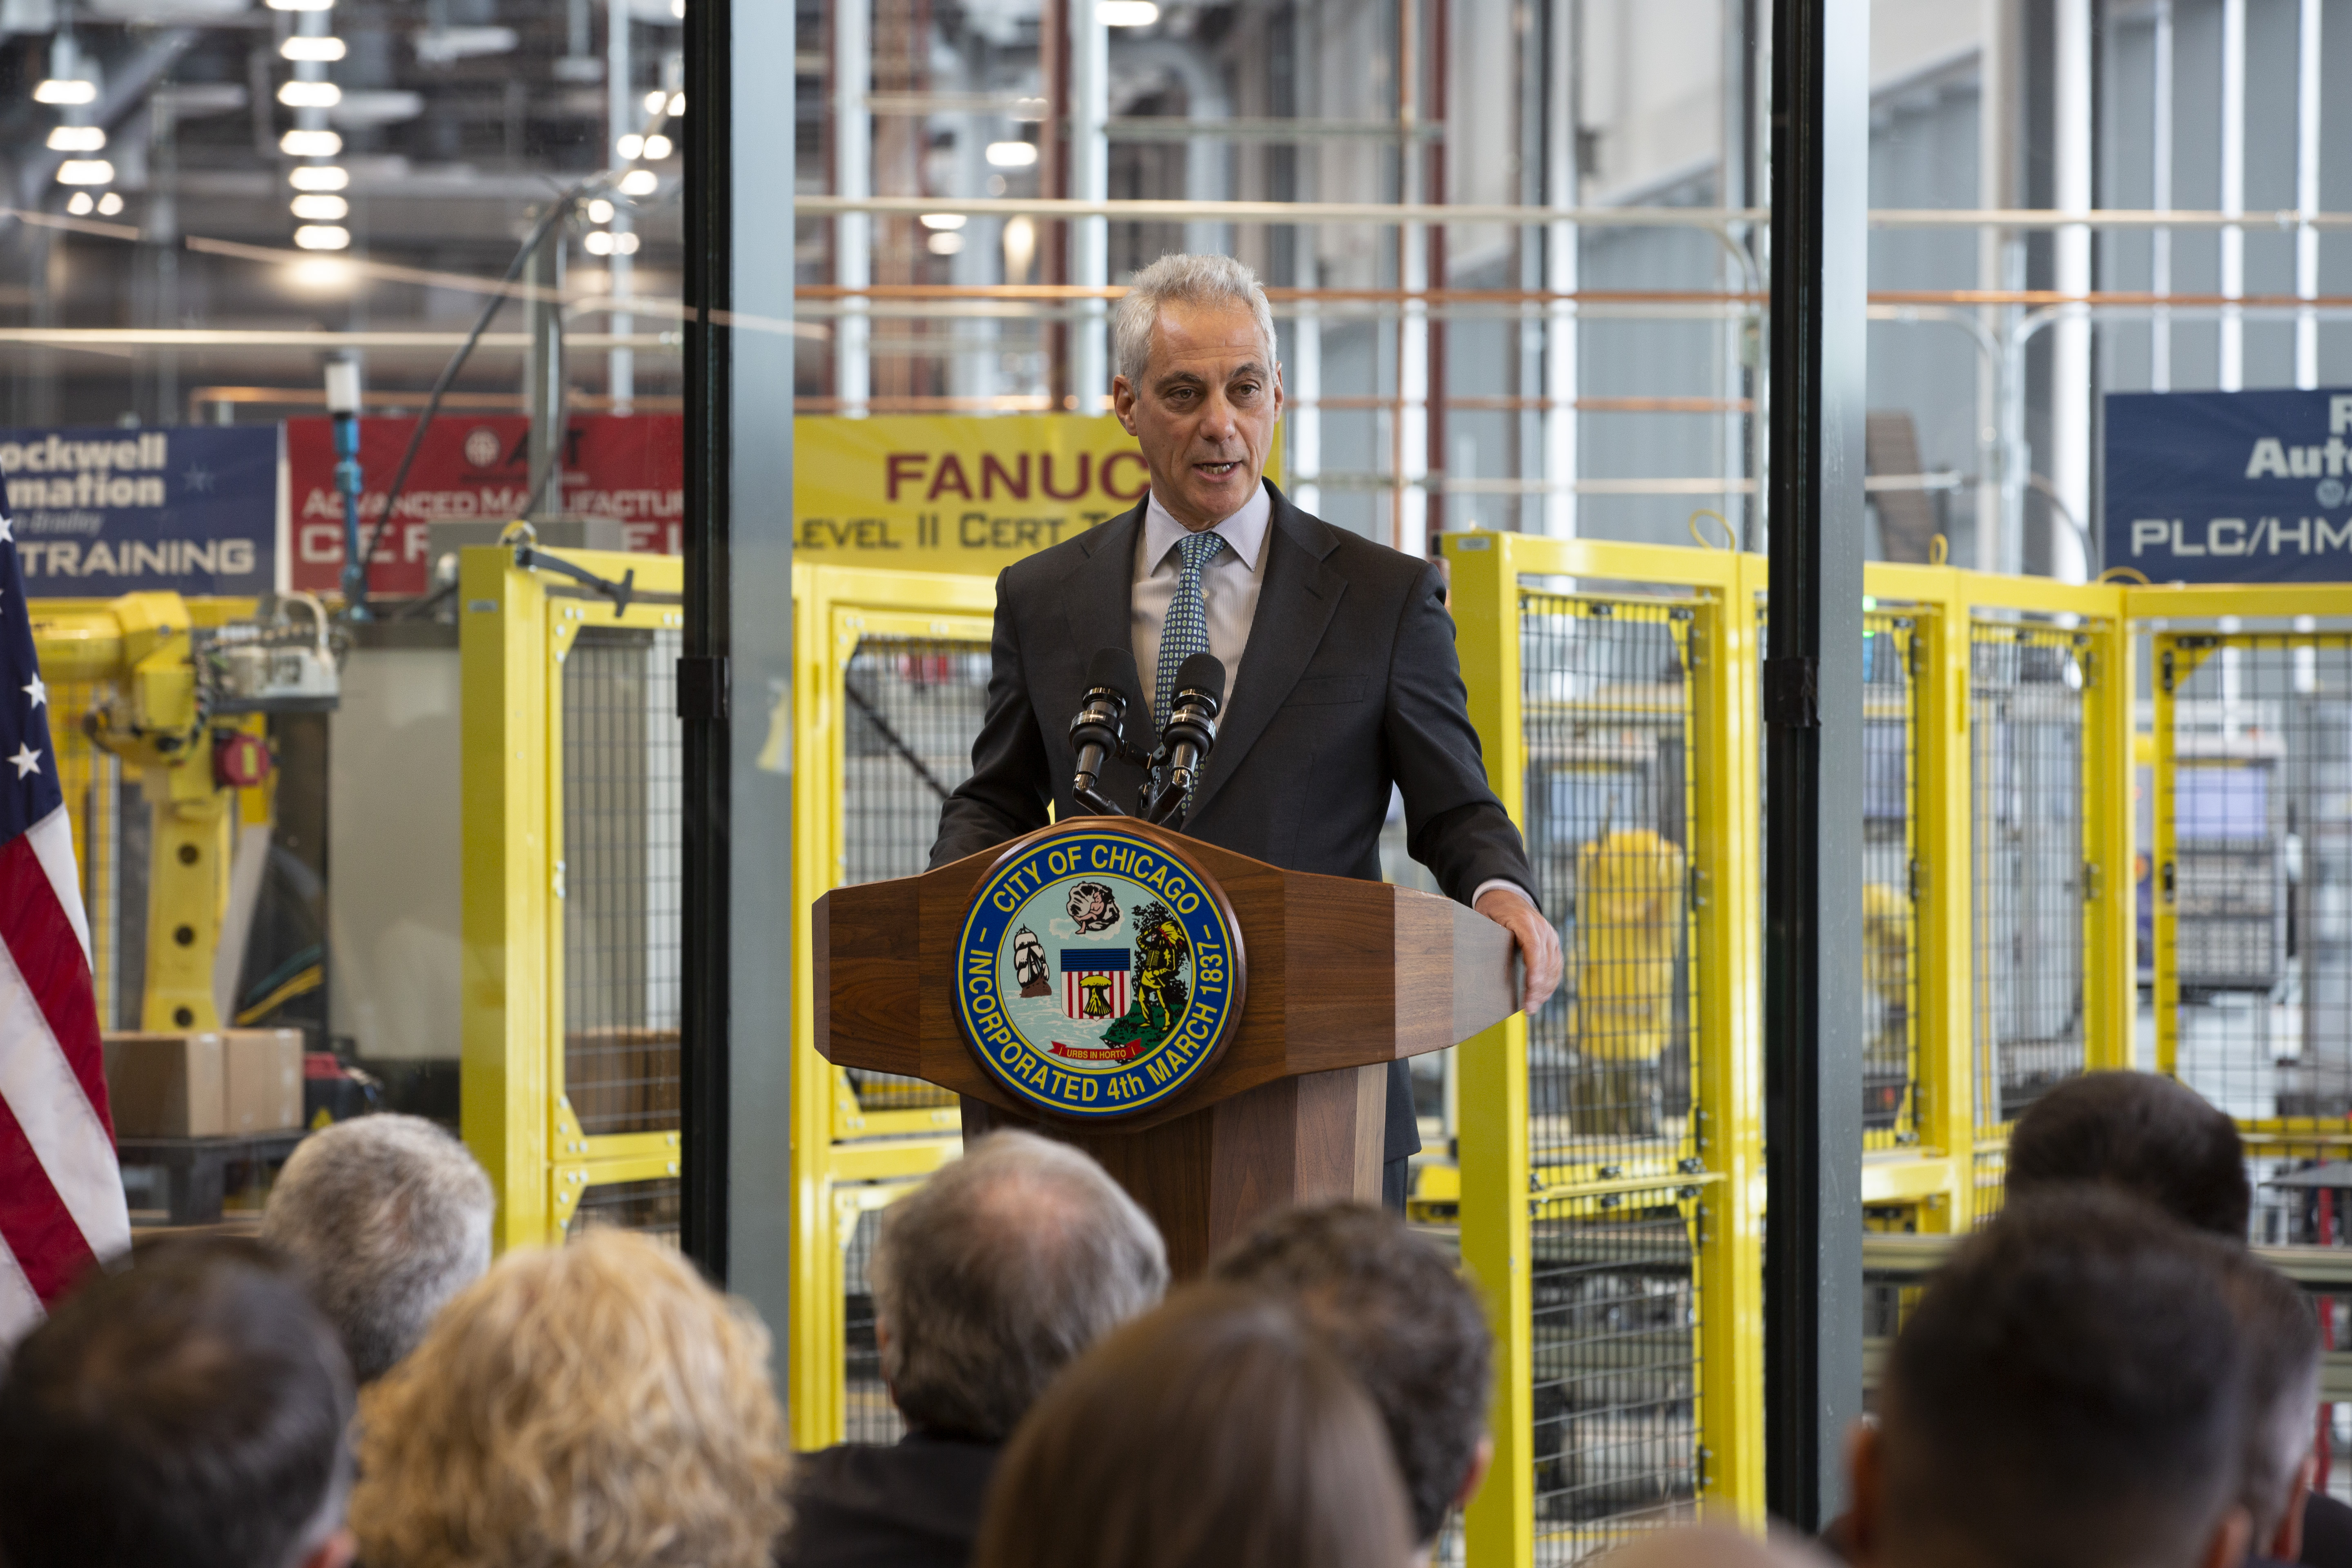 Mayor Rahm Emanuel speaks at the opening of the Manufacturing Technology and Engineering Center at Richard J. Daley College. He said the reinvention of City Colleges of Chicago has transformed the community college system. (Manuel Martinez/WBEZ)